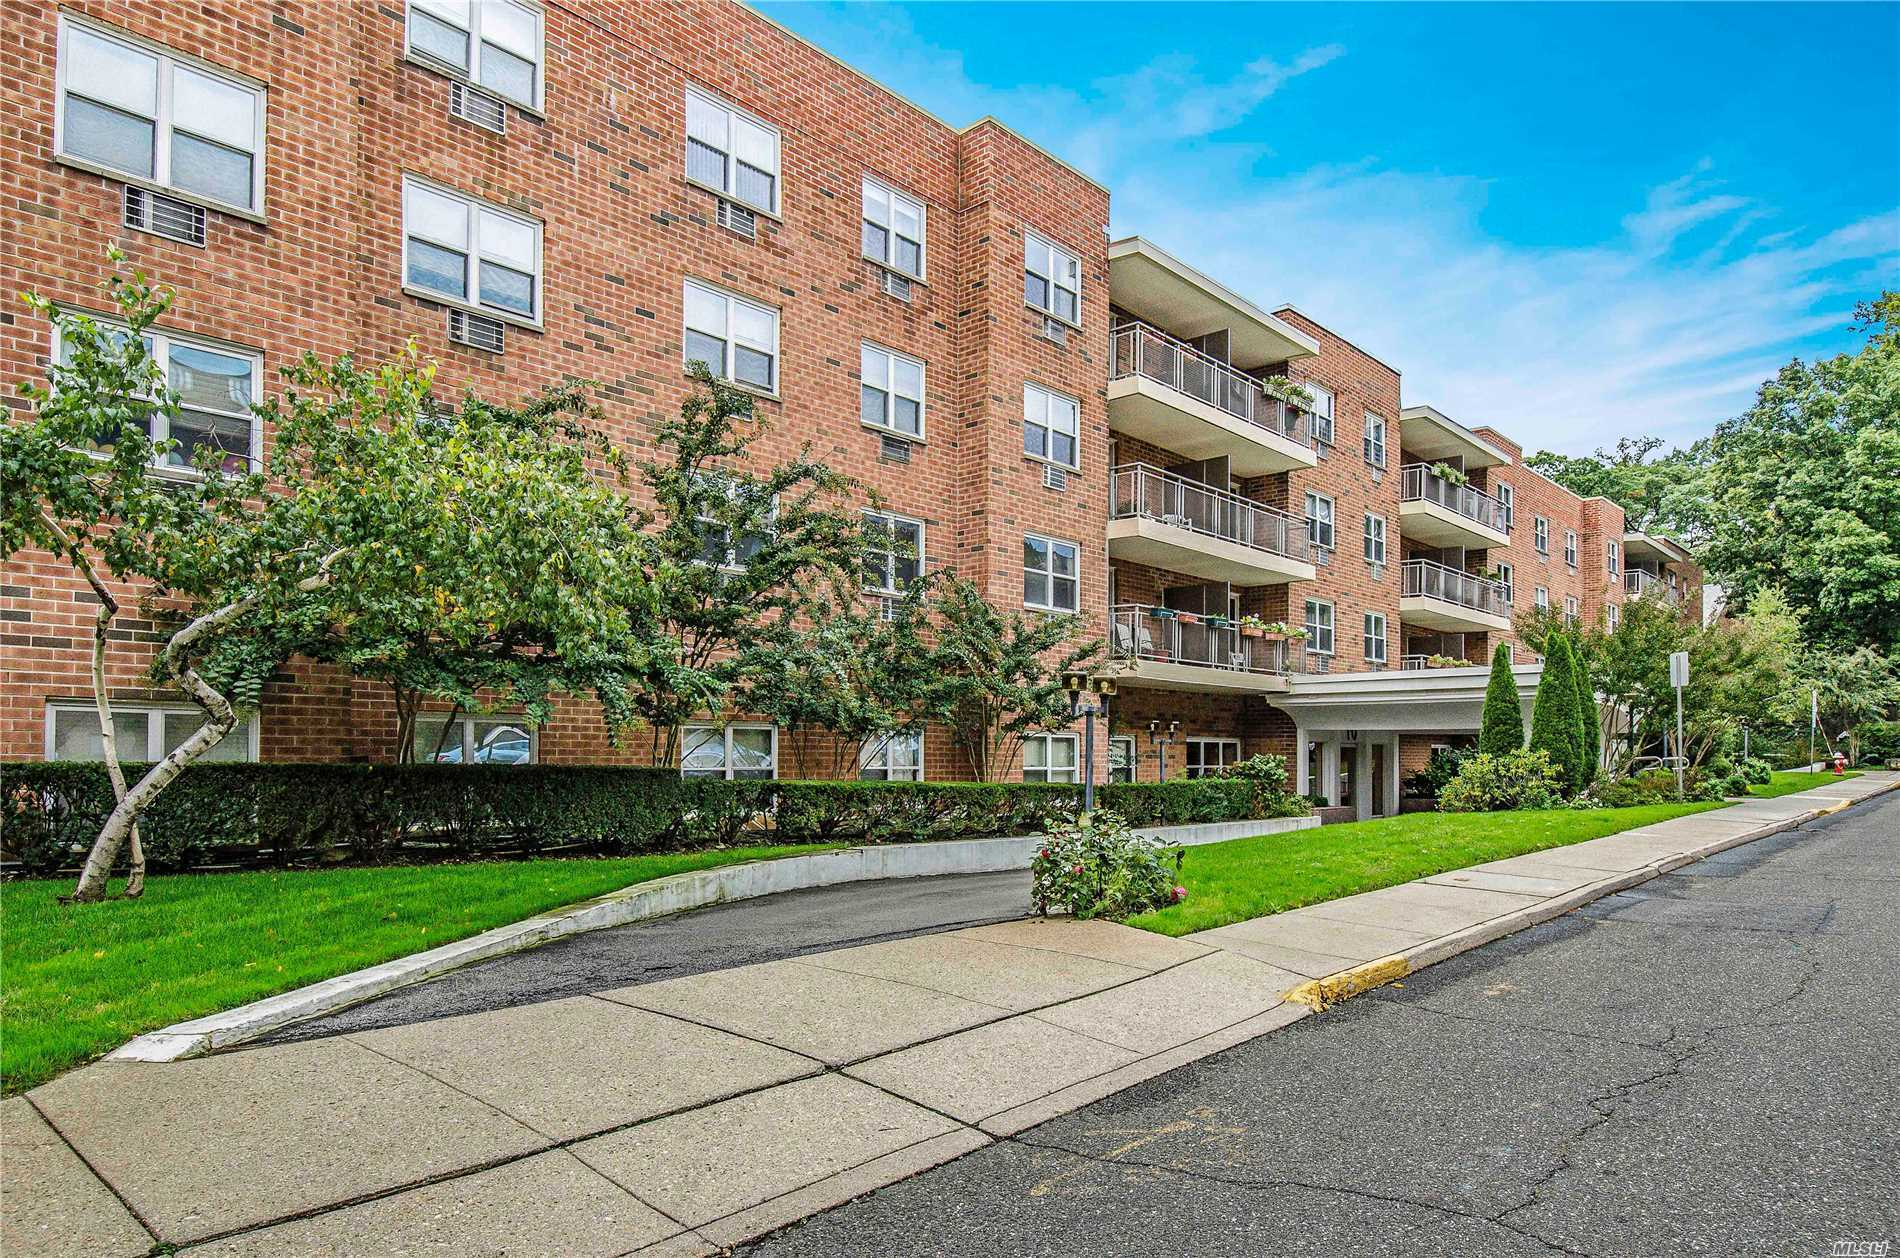 Property for sale at 10 Ipswich Ave, Great Neck,  NY 11021